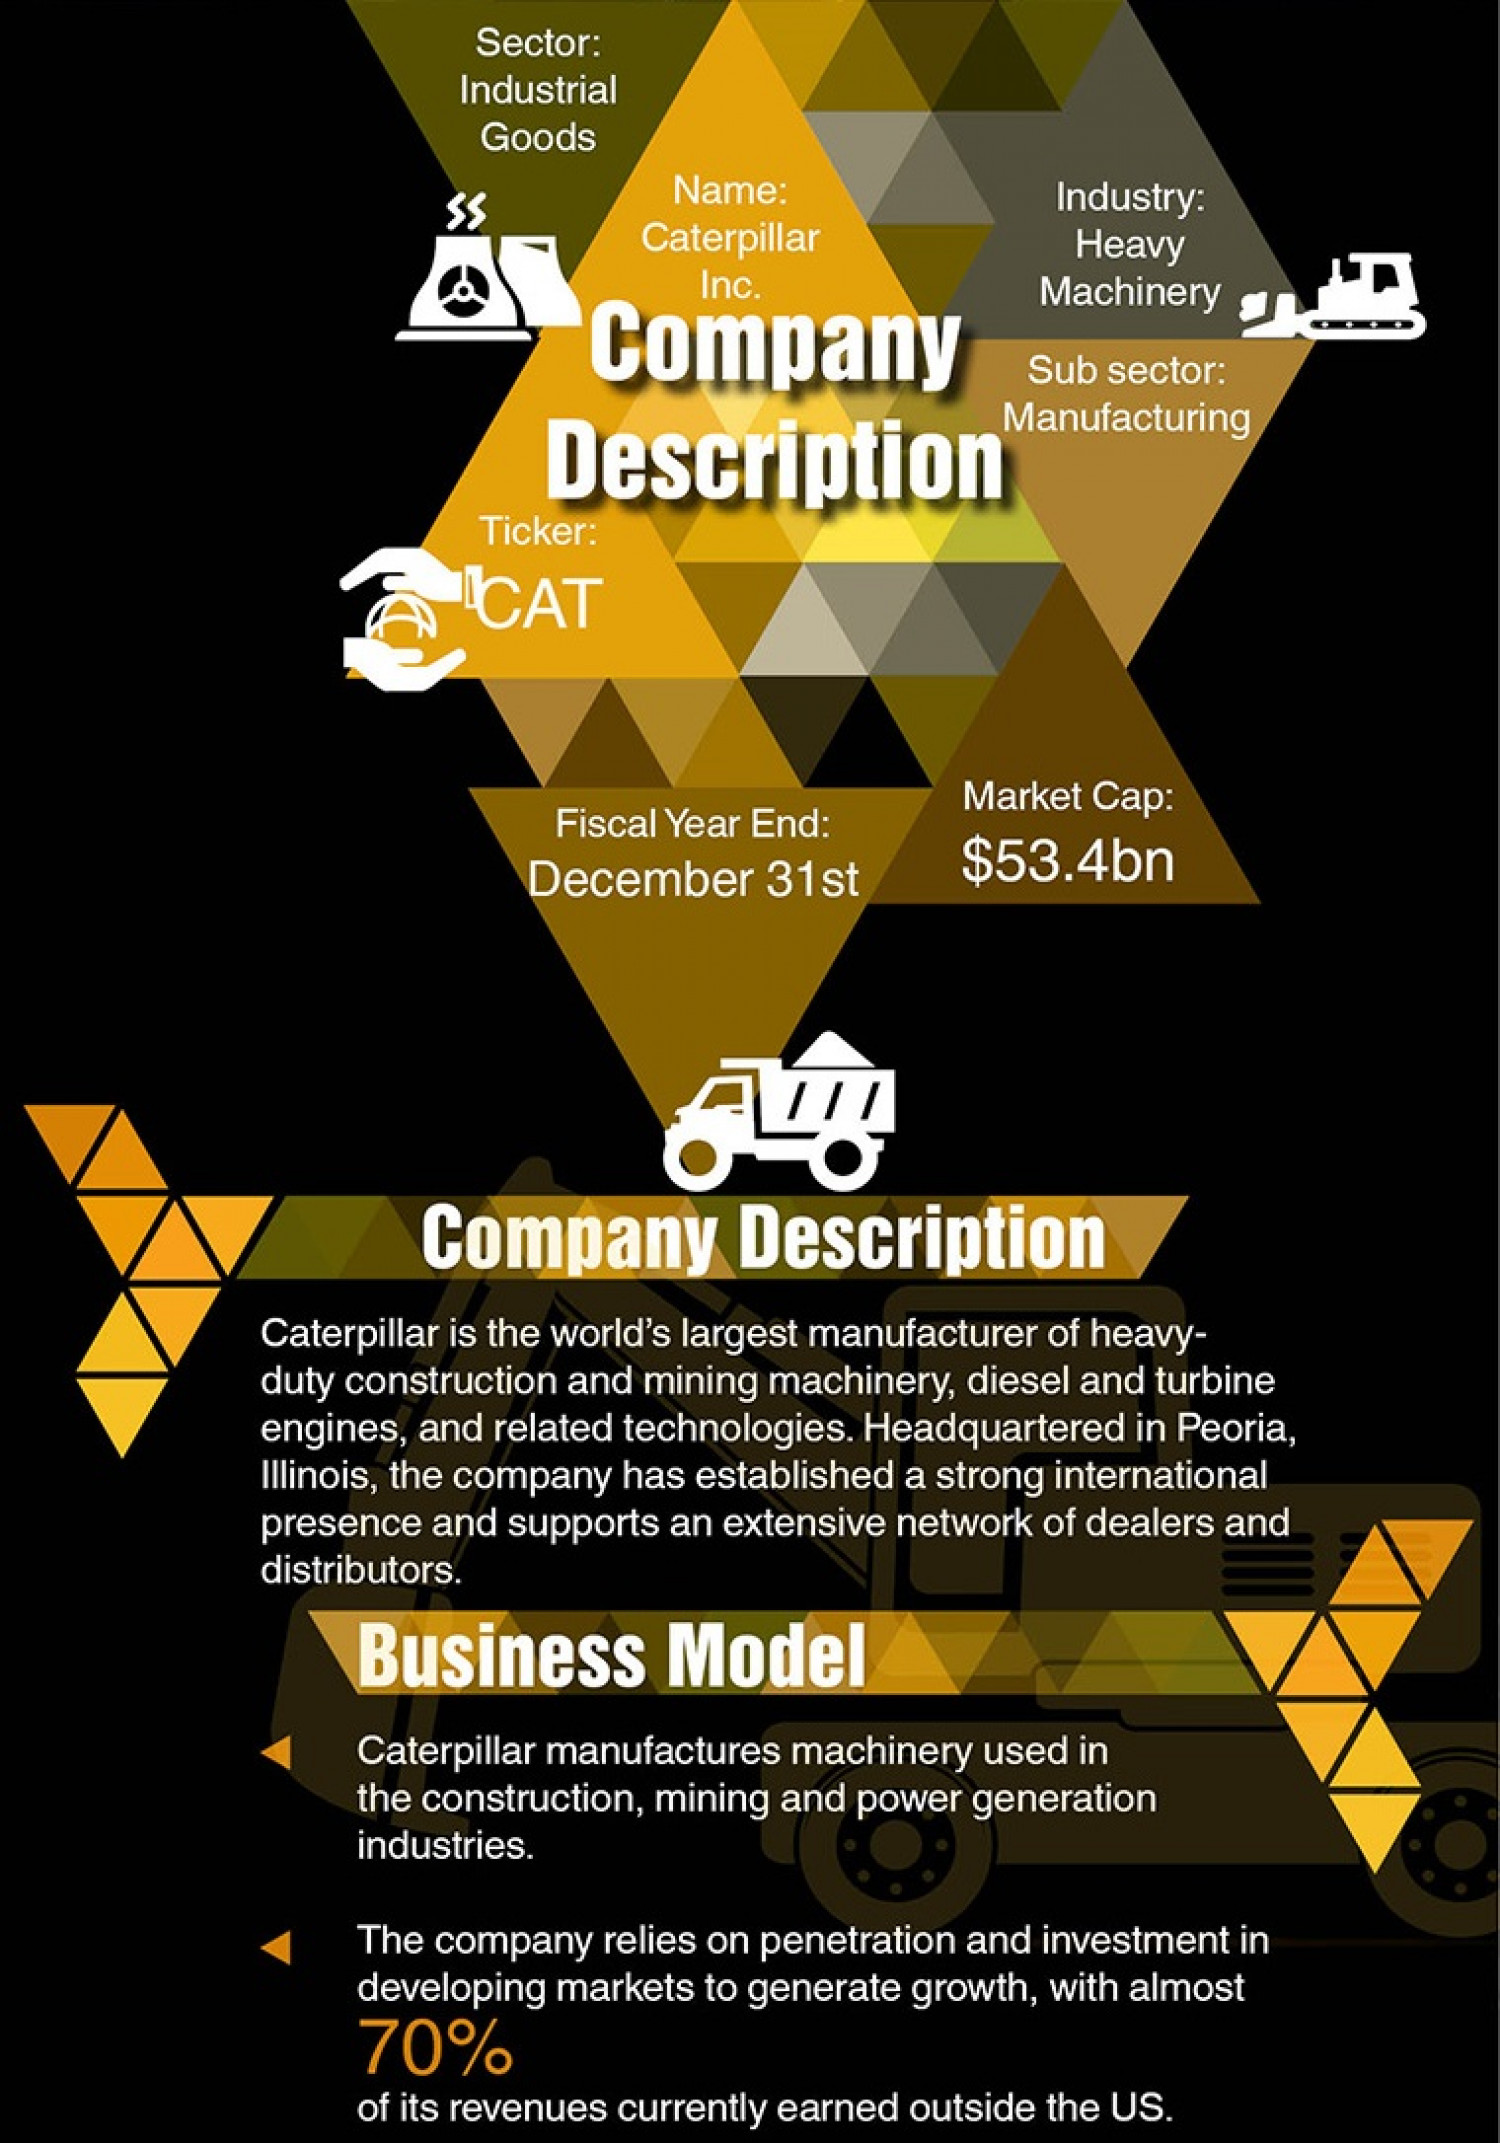 Caterpillar Company Description Infographic